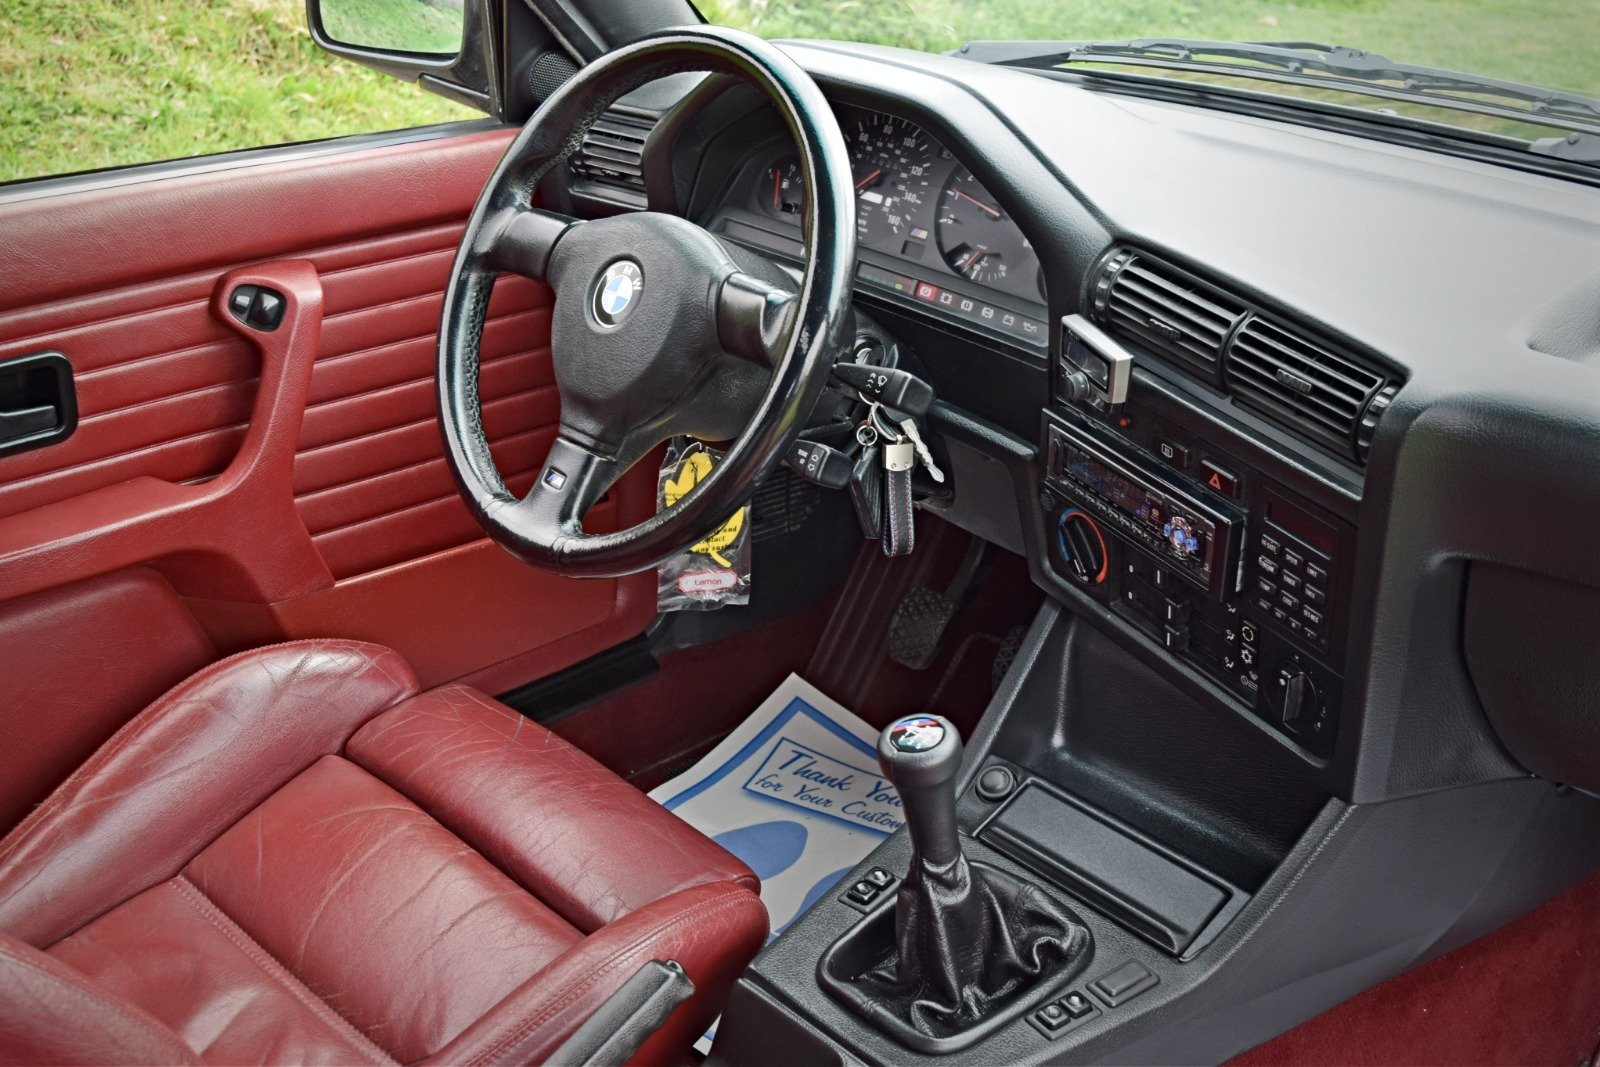 BMW M3 E30 2.3 PETROL MANUAL 1992/K BLACK For Sale (picture 6 of 6)